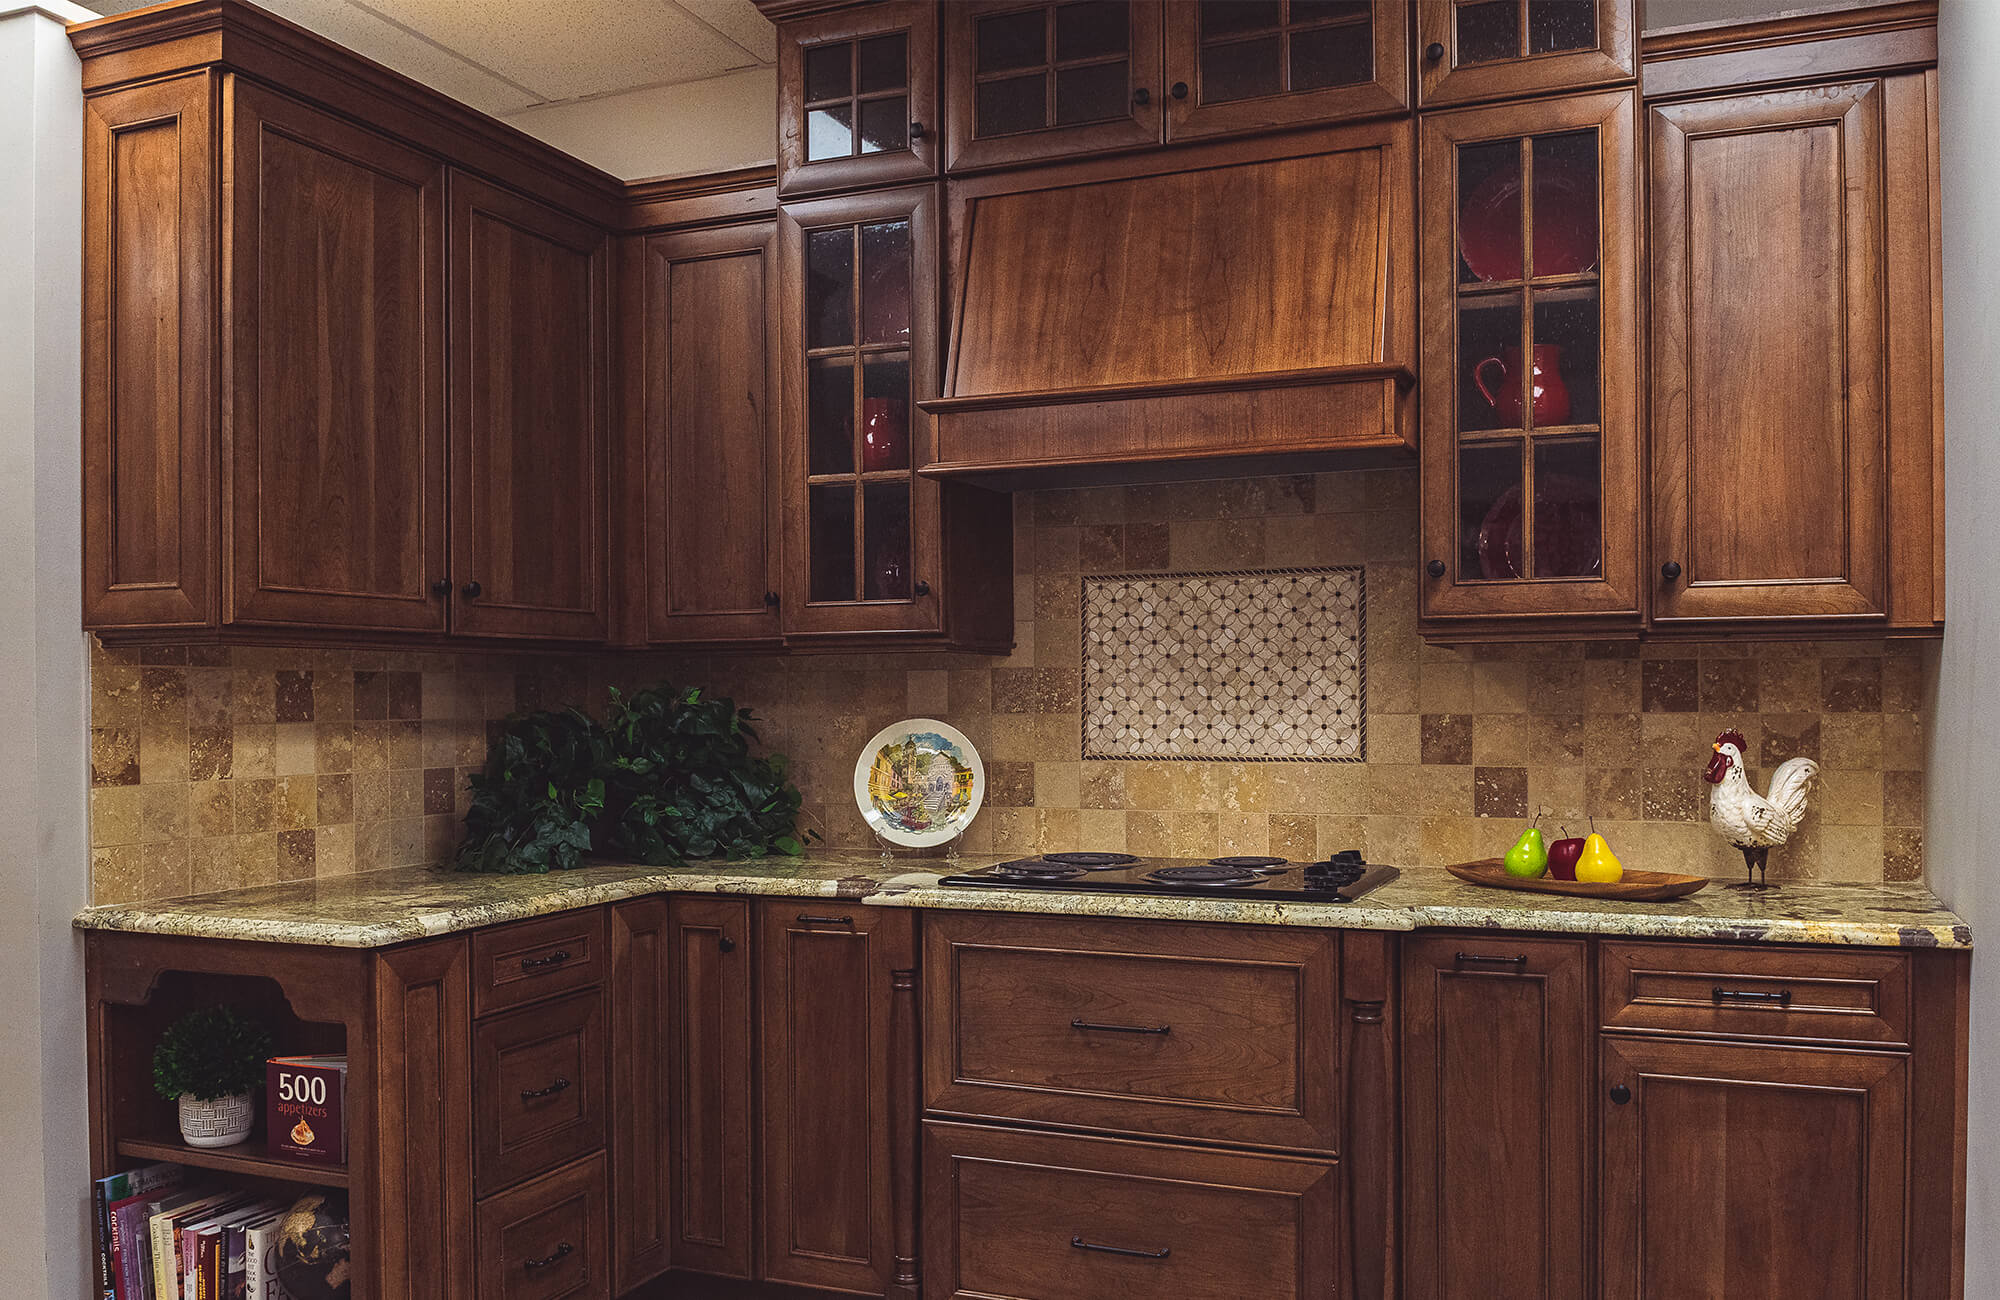 Dark stained wood showroom kitchen stove